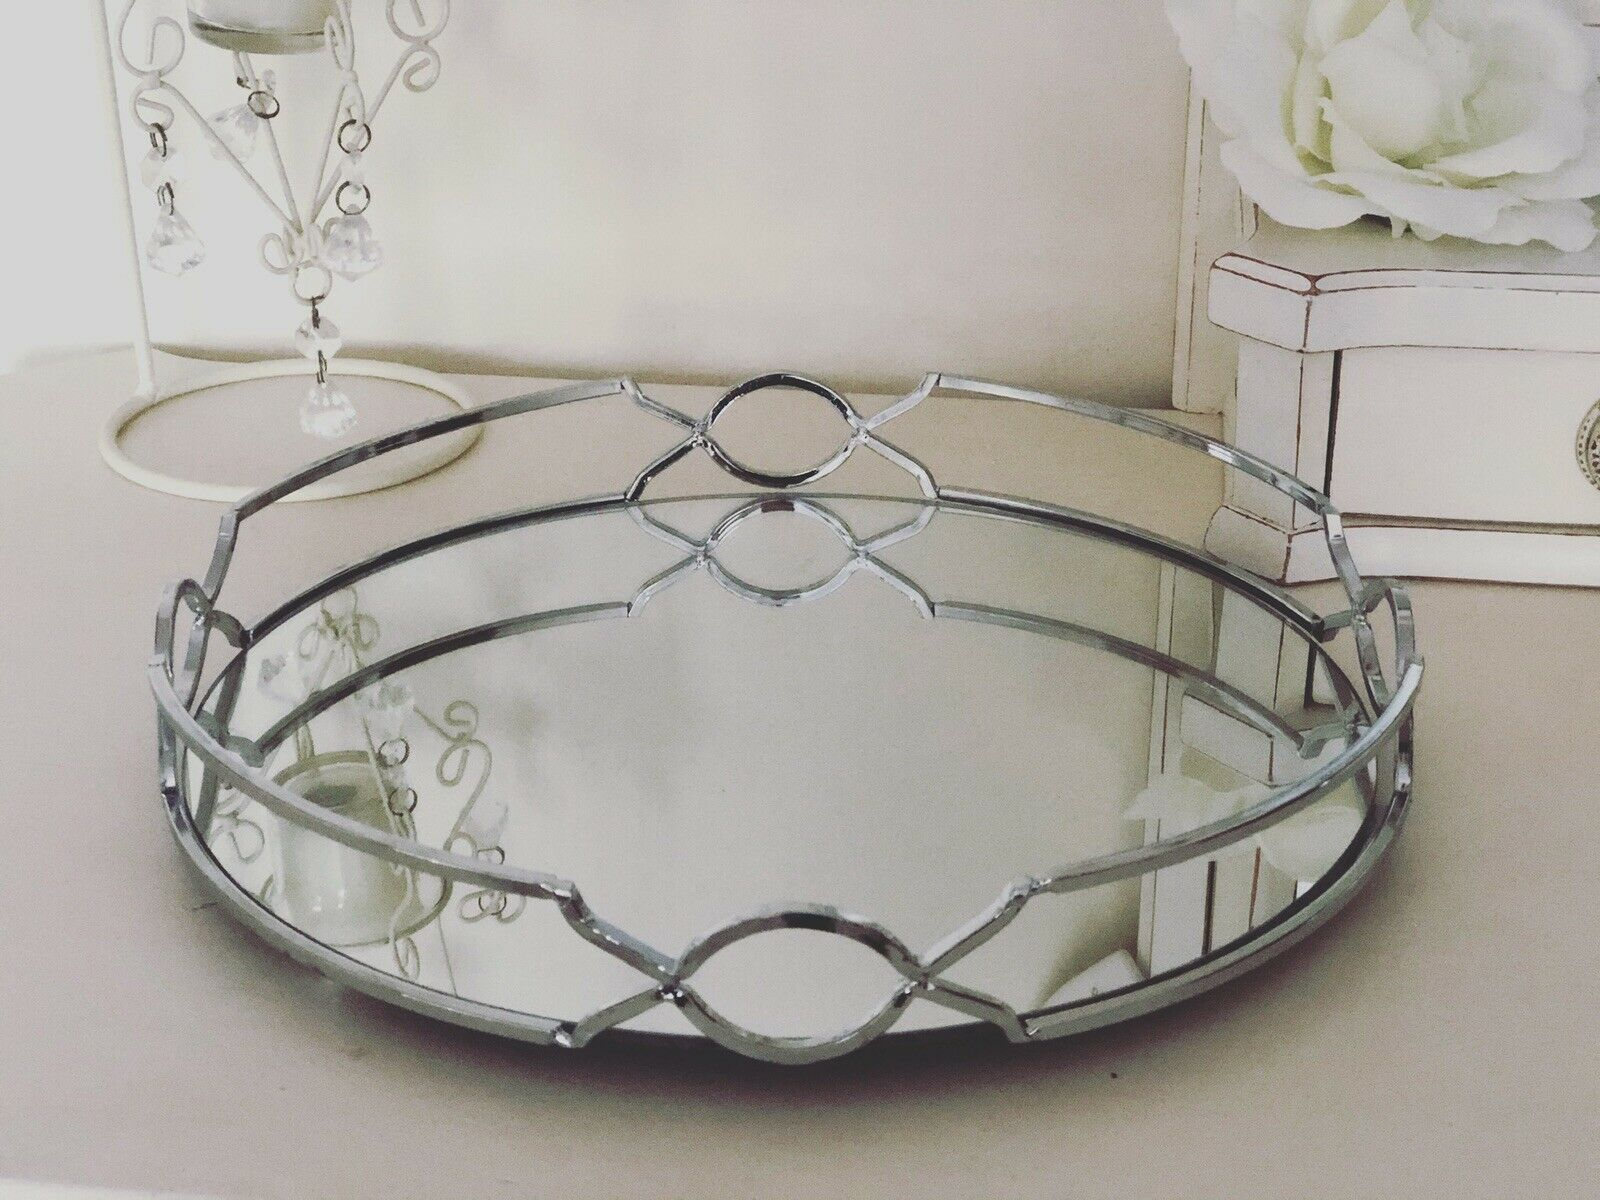 Gold Decorative Serving Tray Table Centre Piece Decor Candle Holder Plate 41cm For Sale Ebay